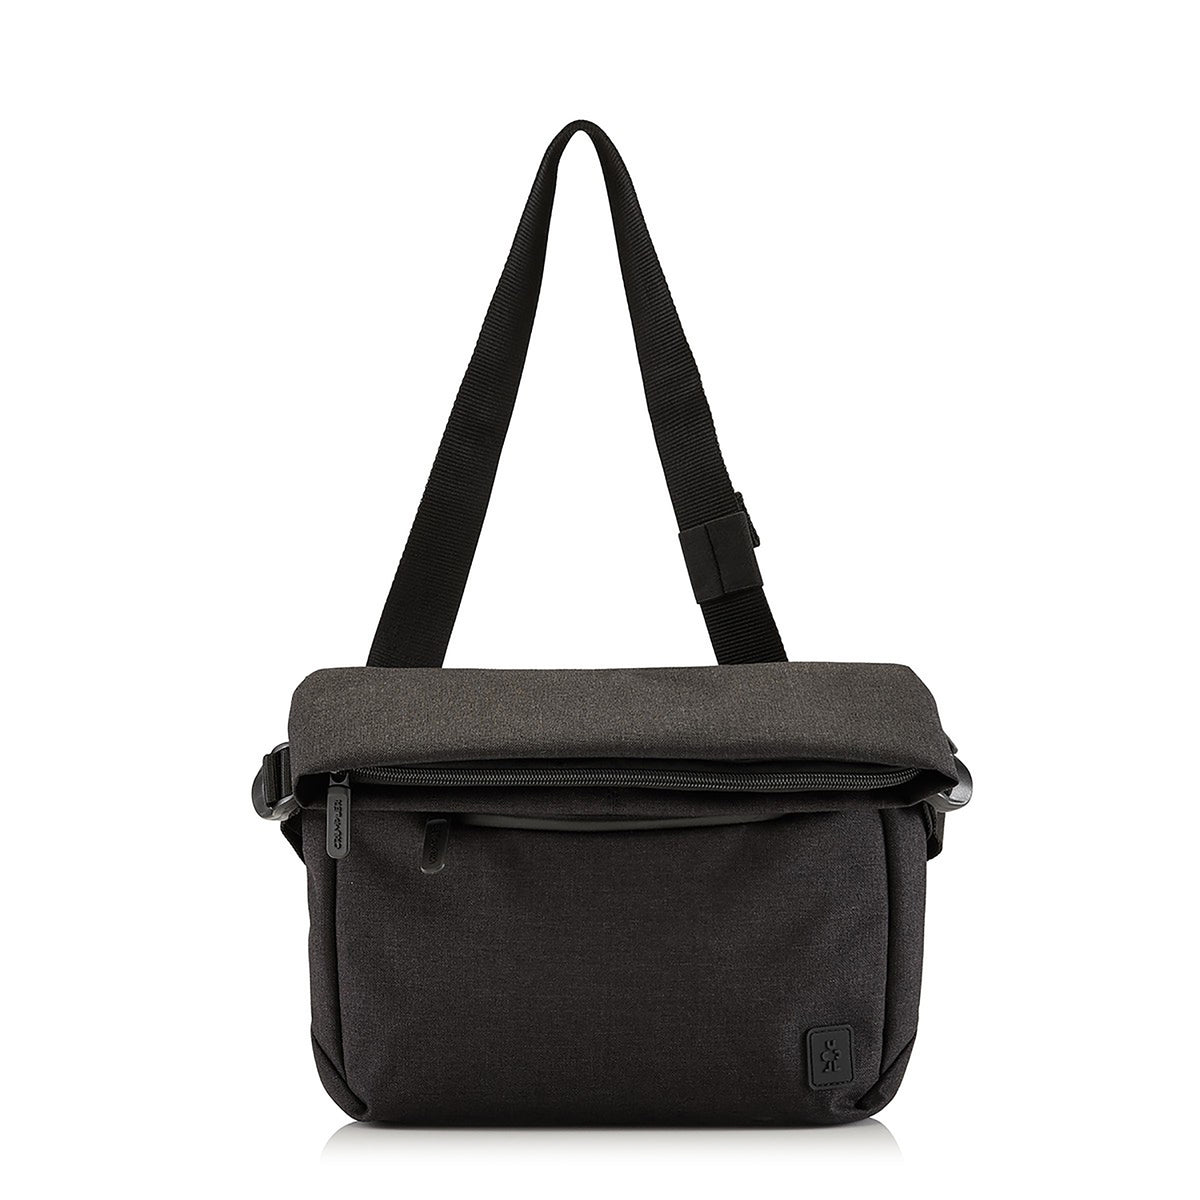 Crumpler: Mini Rocket Cross Body Bag - Black Marle